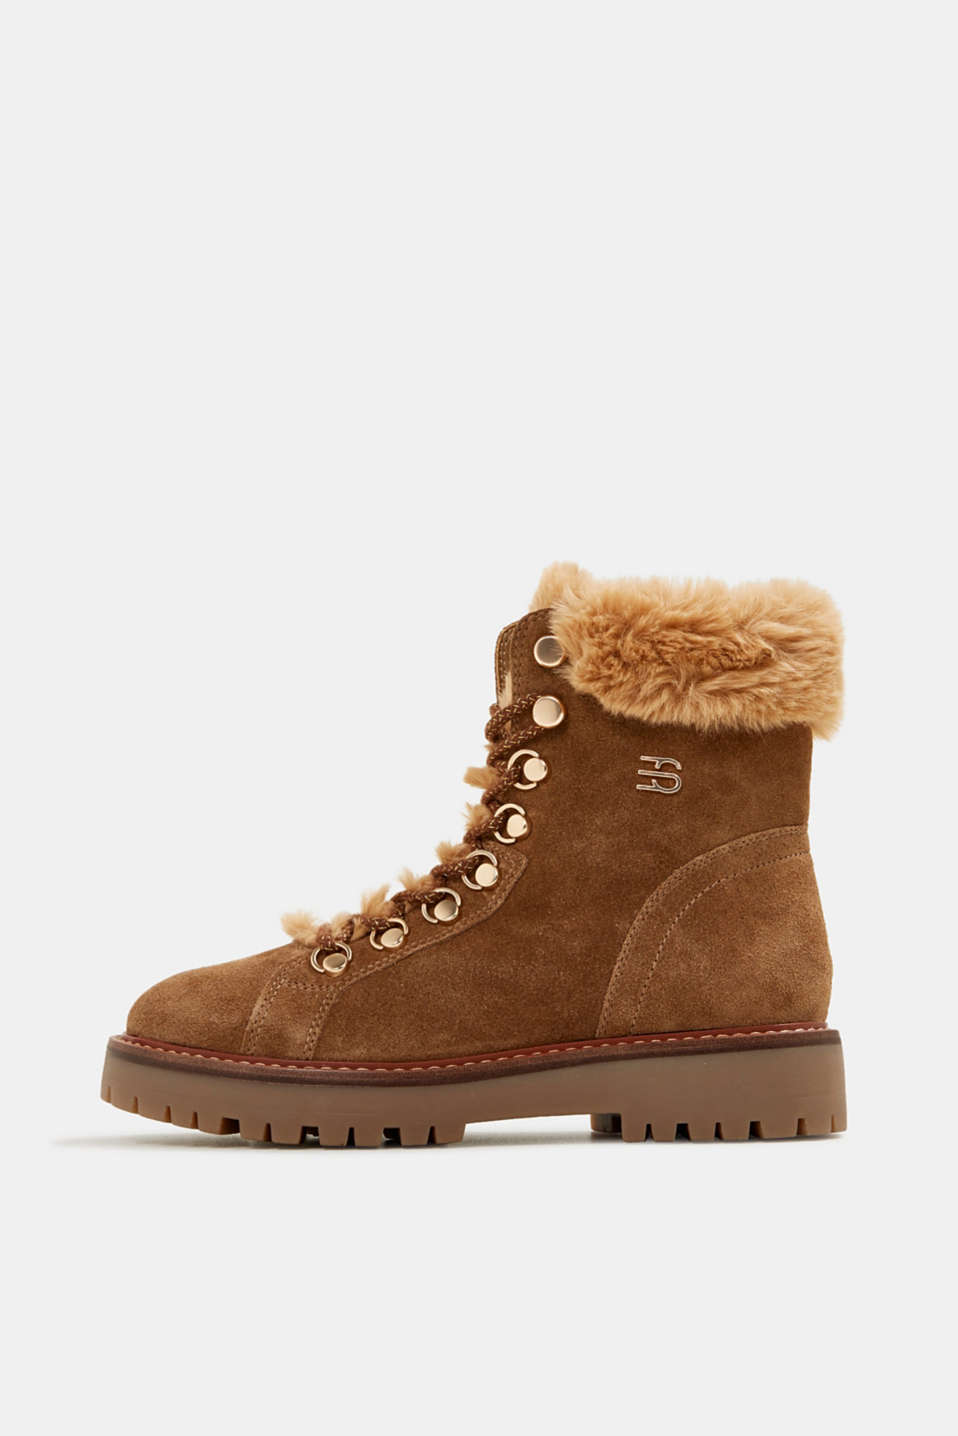 Esprit - Lace-up boots made of leather with fur lining